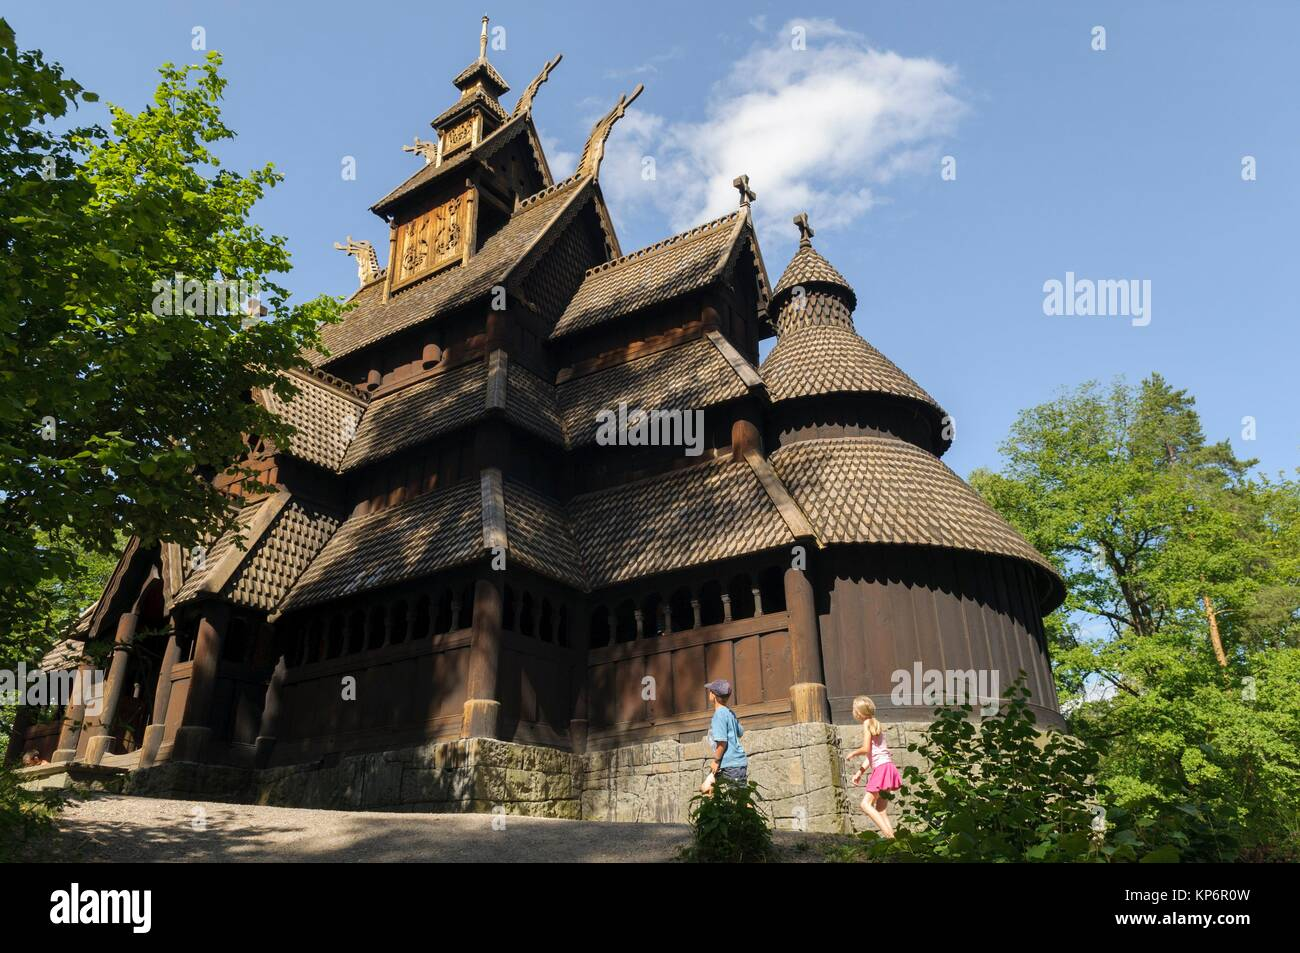 Norwegian Folk Museum, one of the world´s oldest and largest open-air museums, with 155 traditional houses - Stock Image